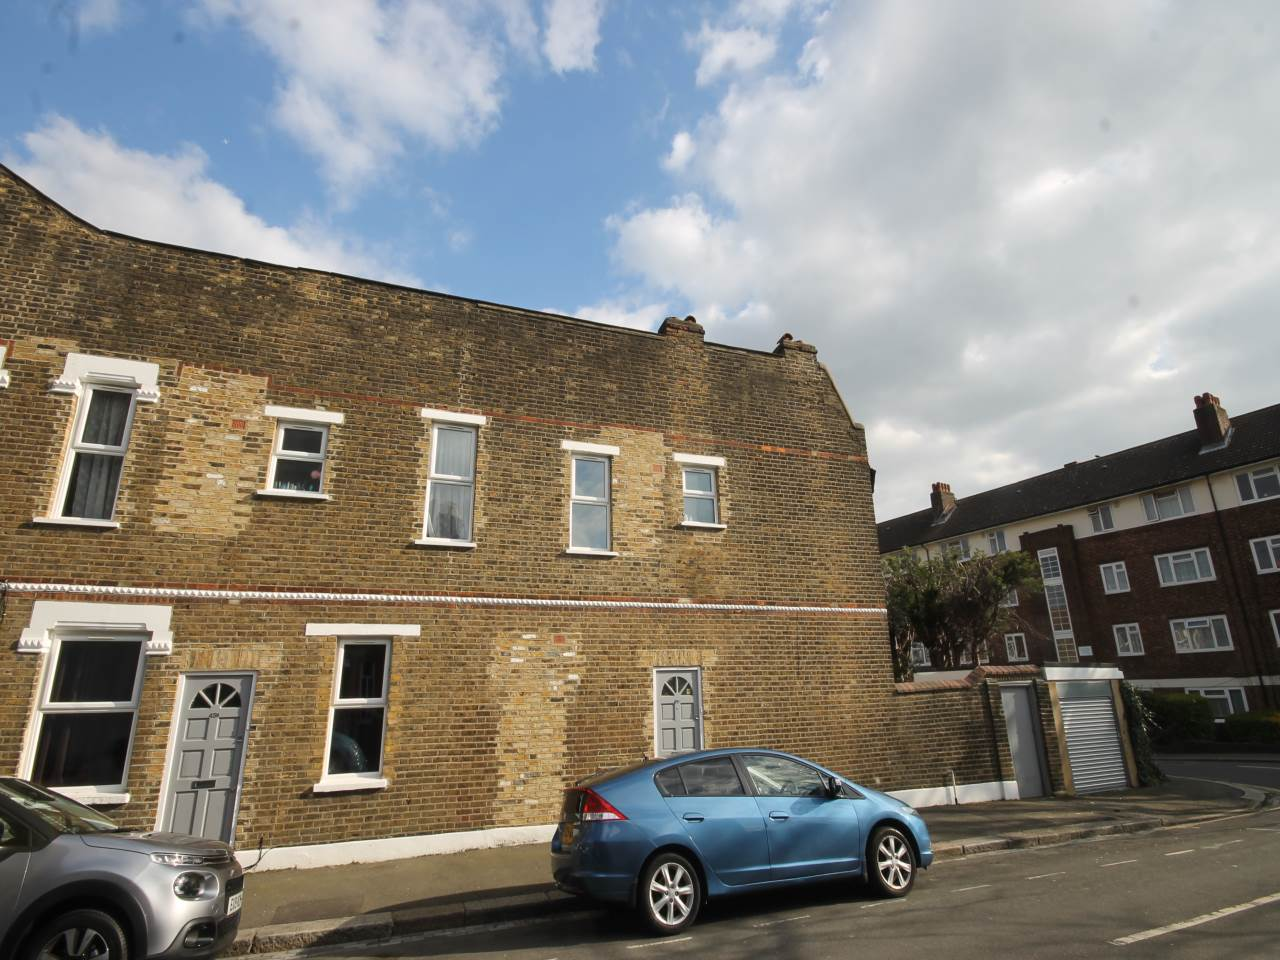 2 bed flat to rent in Leytonstone, E11